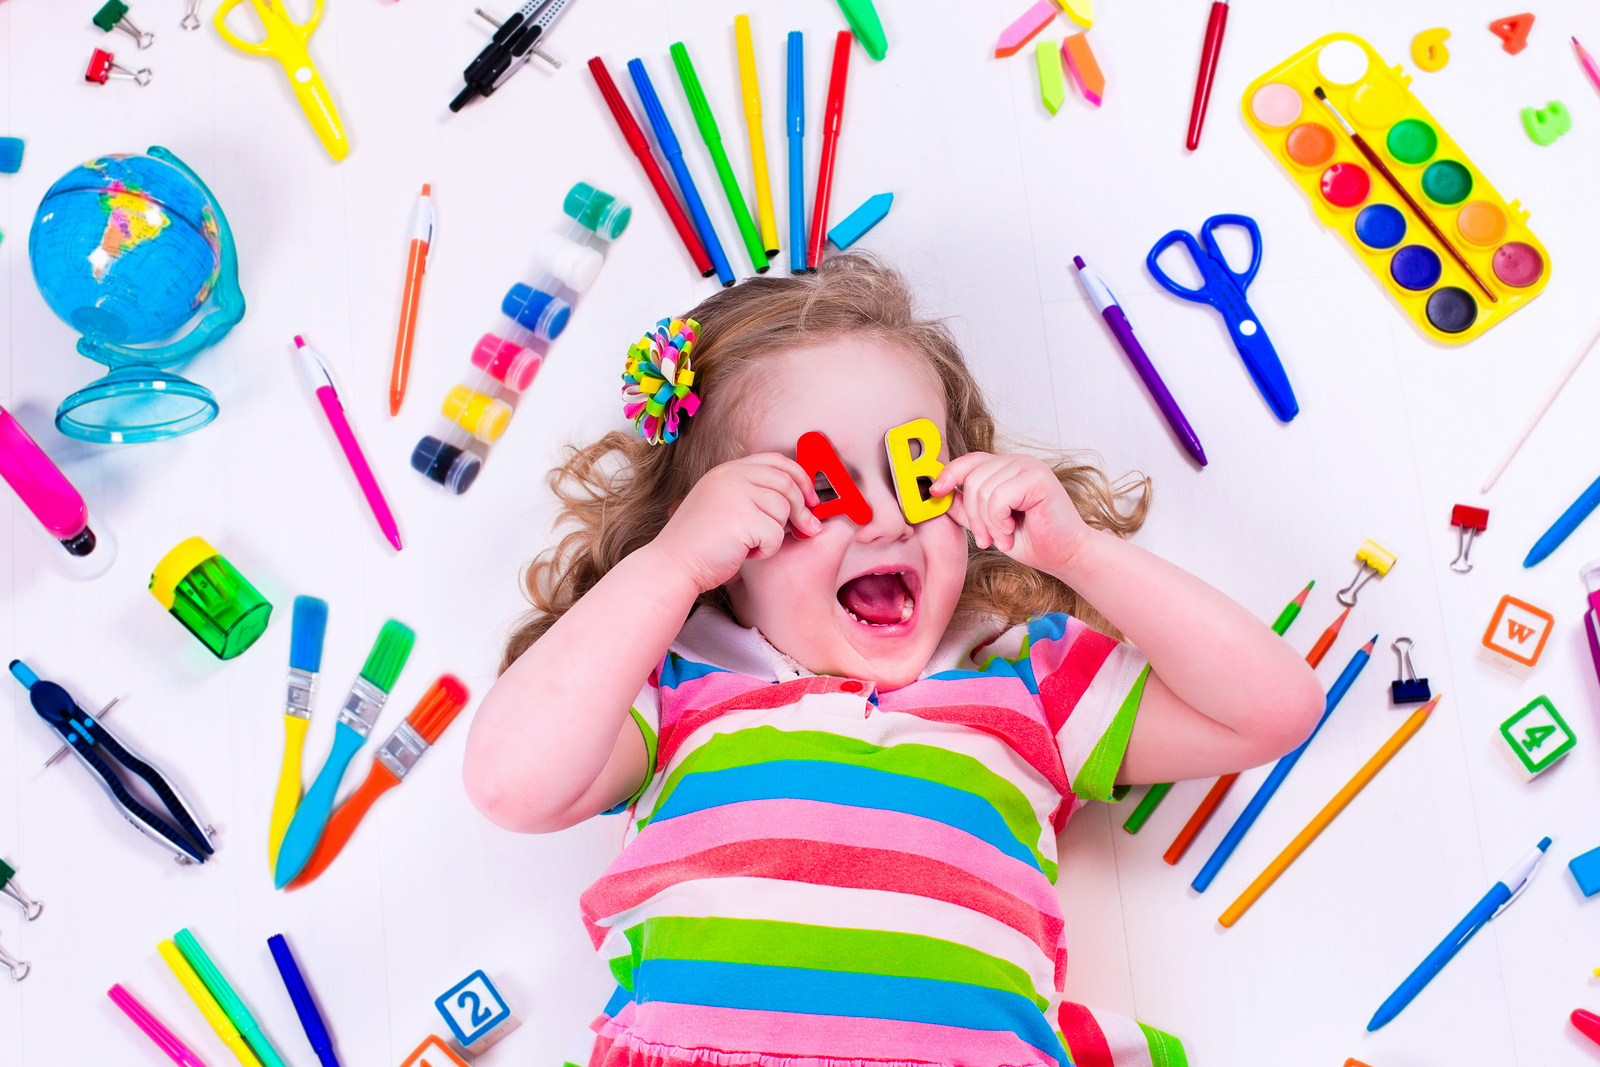 Preschool Supplies To Consider For Your Toddler